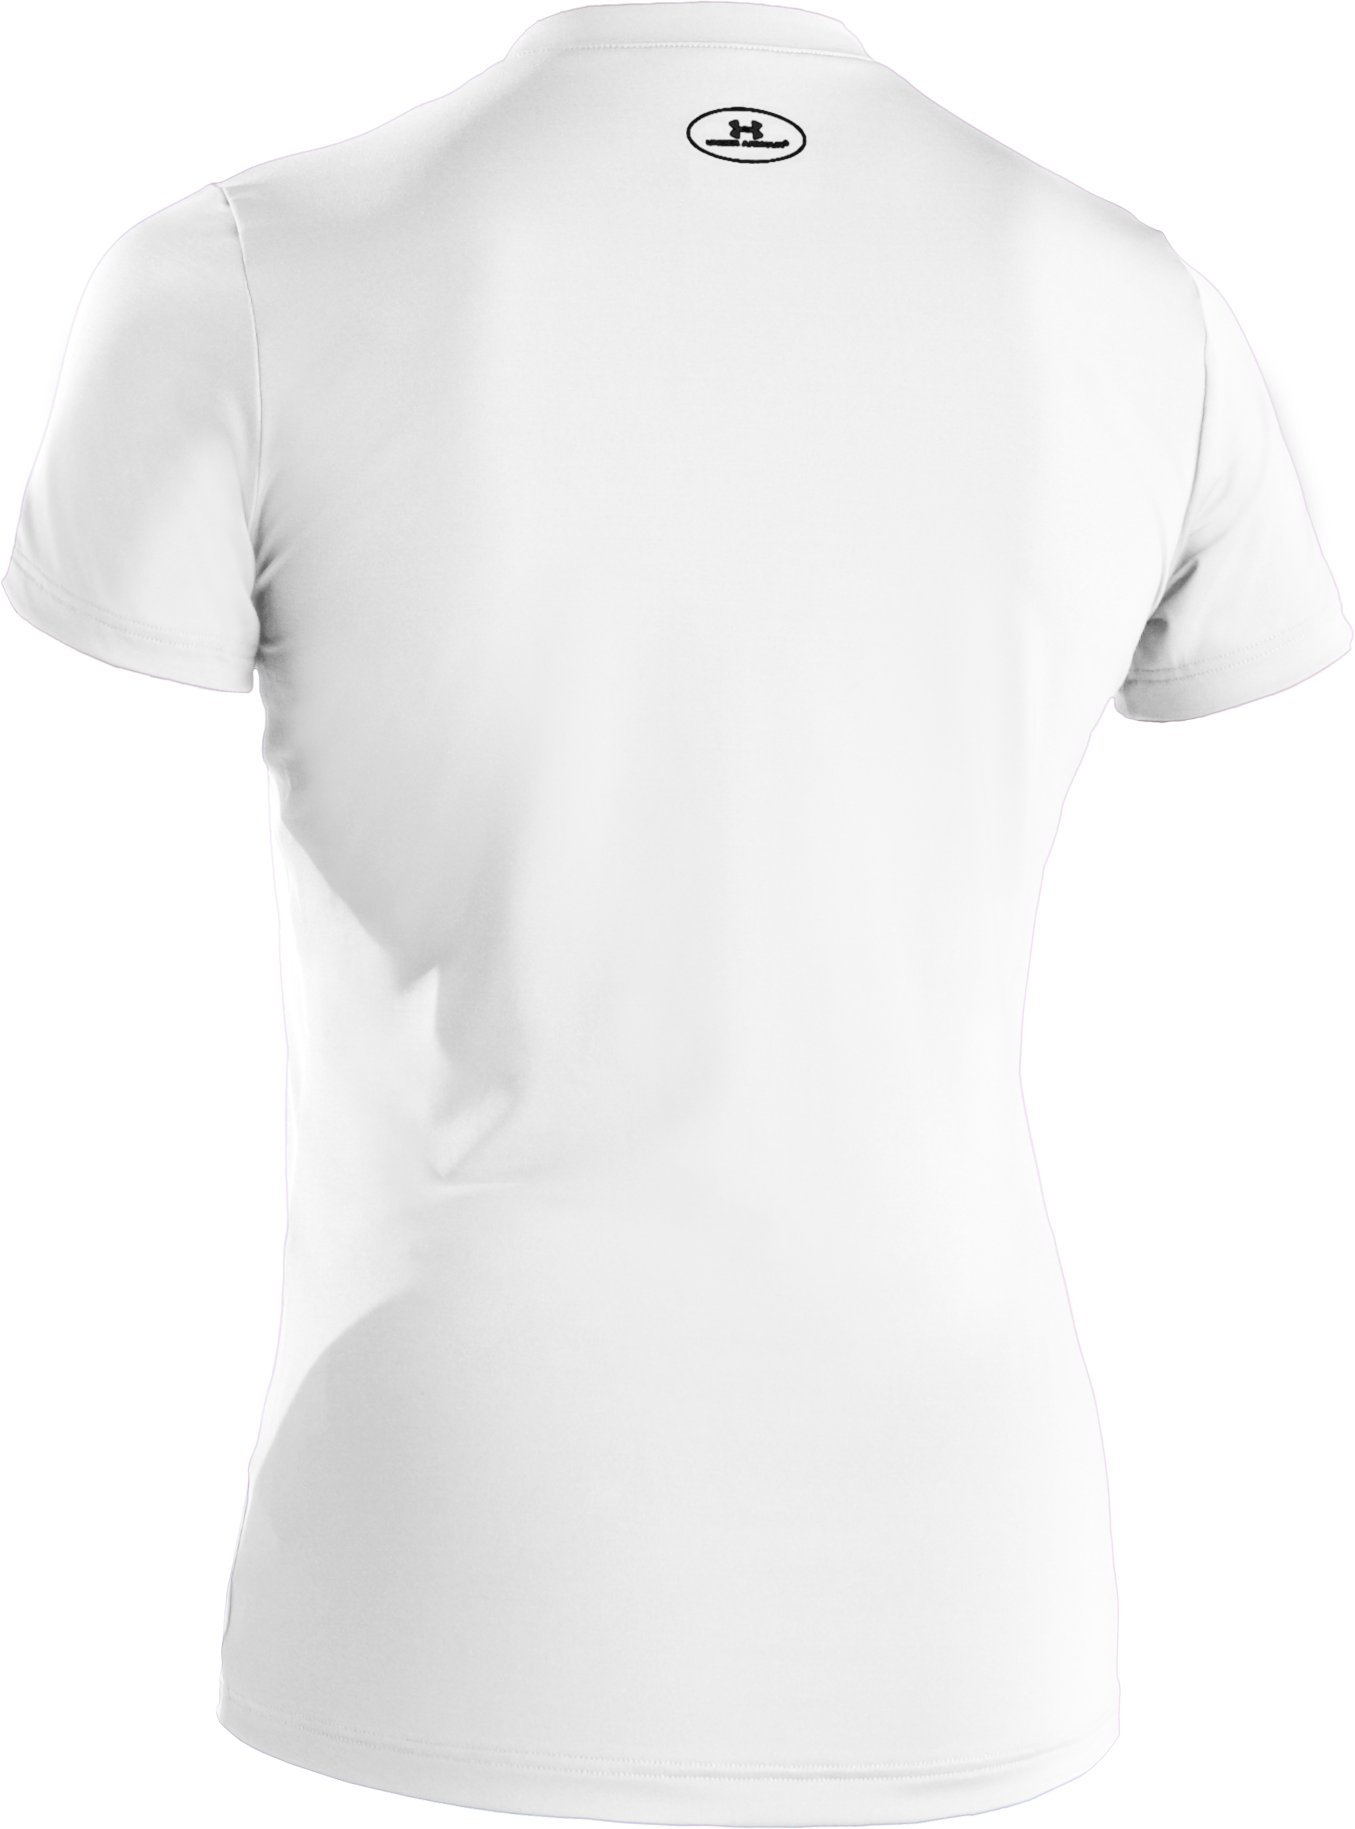 Girls' Fitted HeatGear® Short Sleeve T-Shirt, White